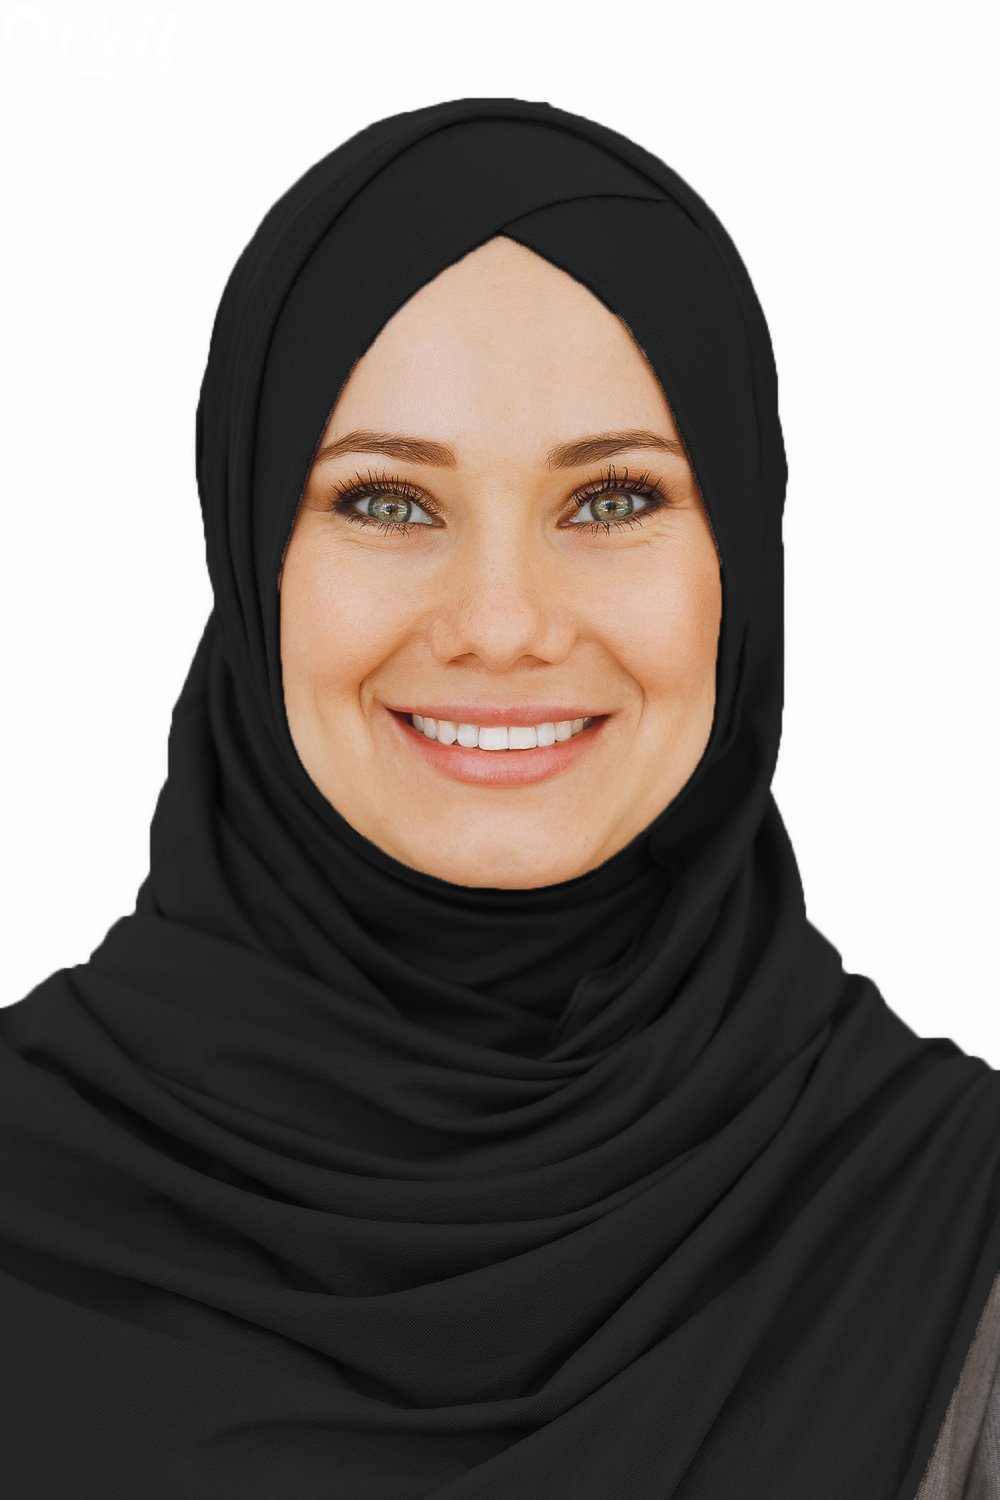 Cotton head scarf, instant black hijab, ready to wear muslim accessories for women (Black) by VeilWear (Image #2)